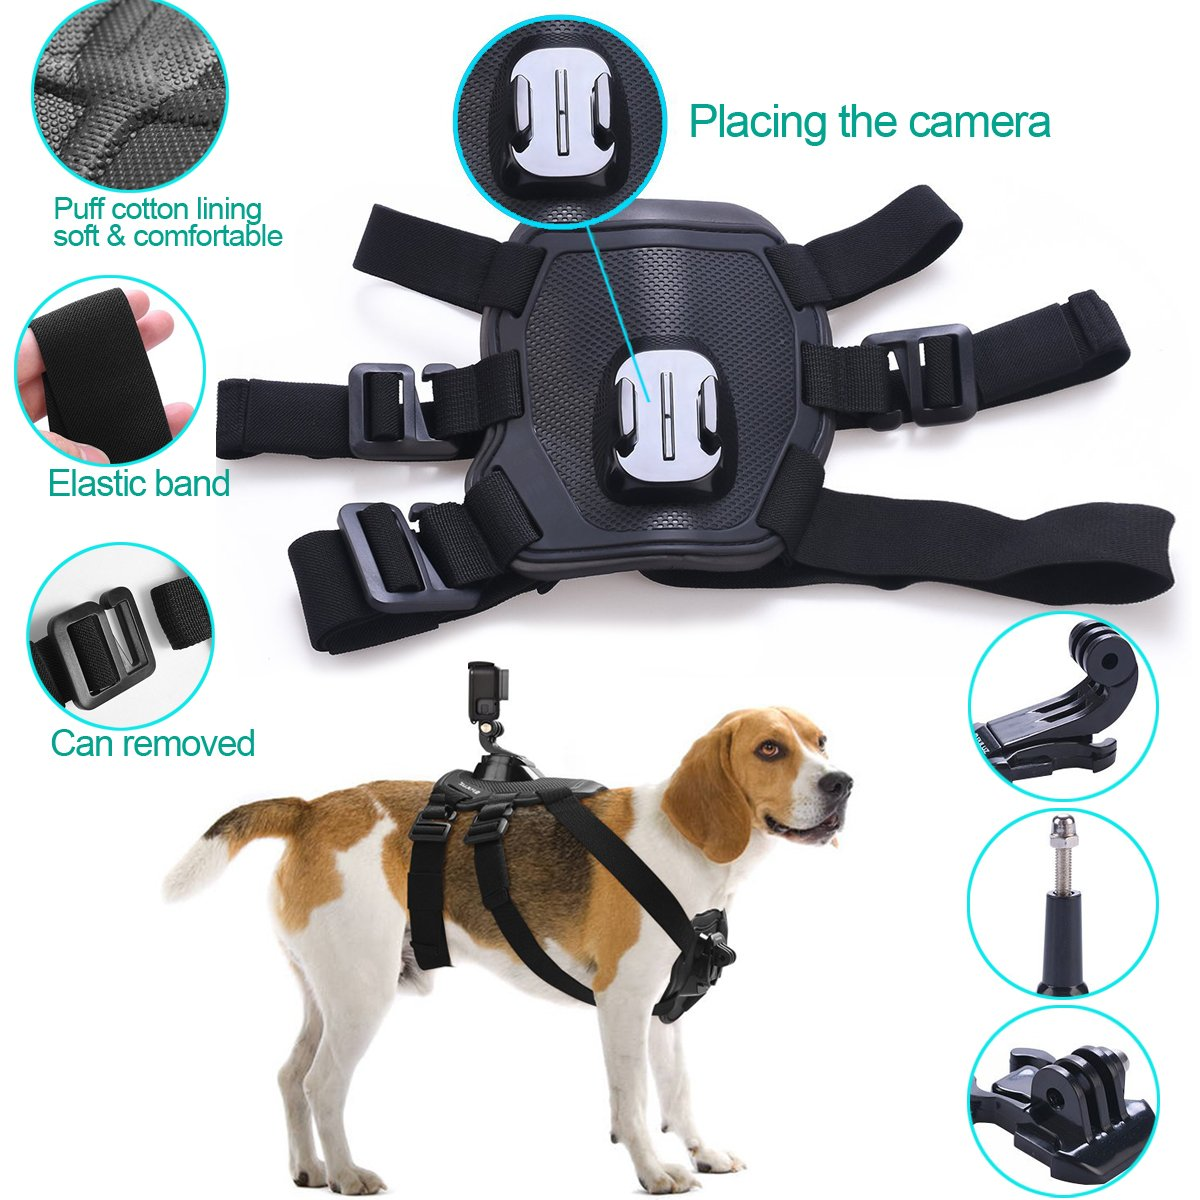 Fetch Dog Mount Harness Chest Strap Mount For Gopro Hero 7 6 5 4 Session 3+ 3 SJCAM Xiaomi Yi 4K GO H9 PRO Camera Accessories